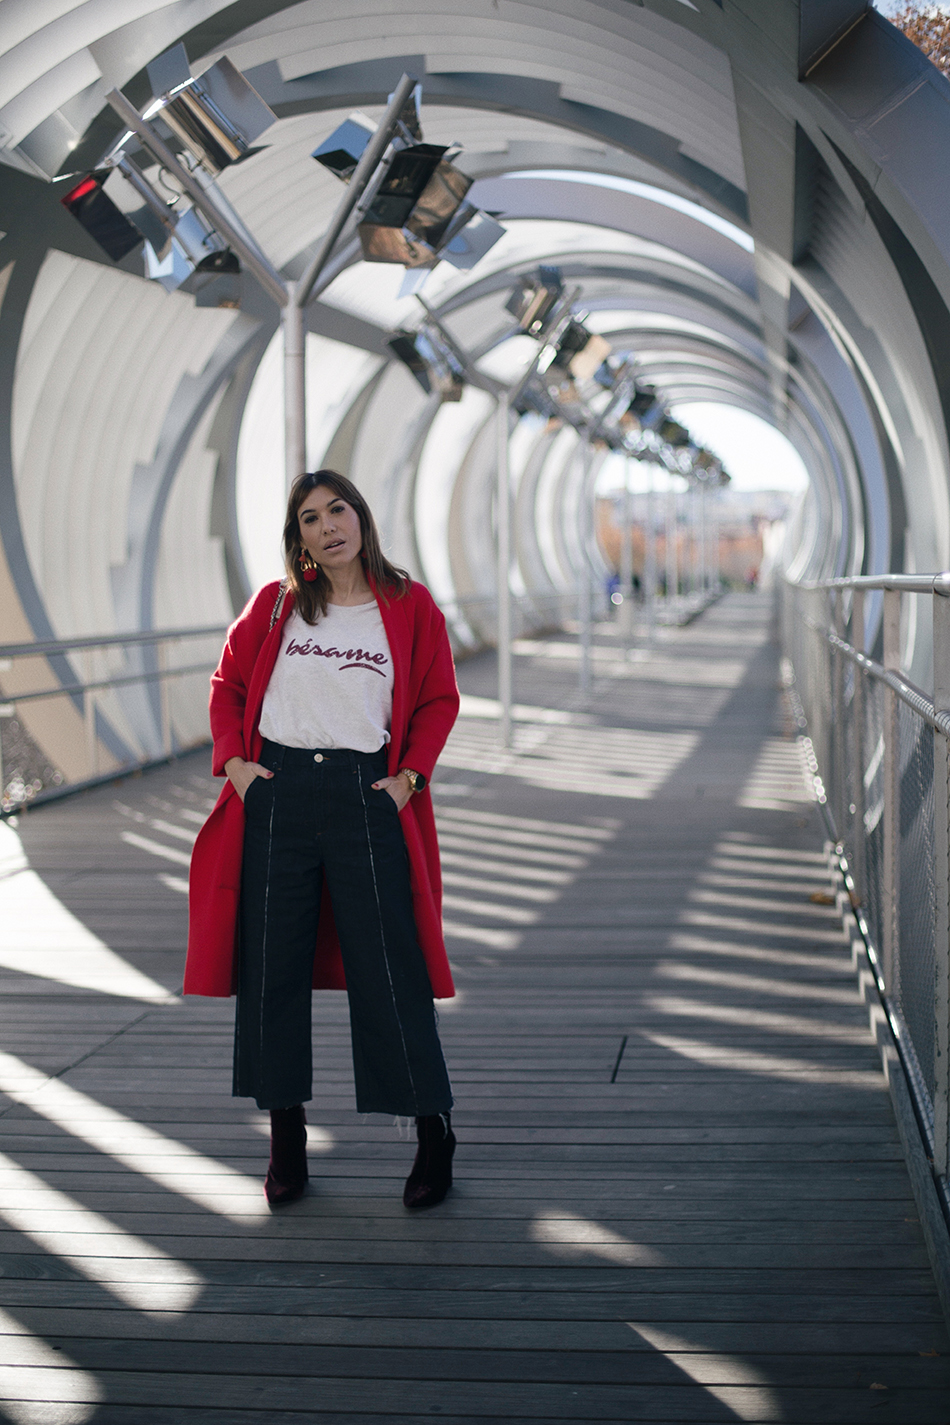 Bárbara Crespo street style. Sweater/sudadera: Tees and Dreams. Culotte Relaxed Jeans: MANGO. Boots/Botines: Pura López. Trendy outfit